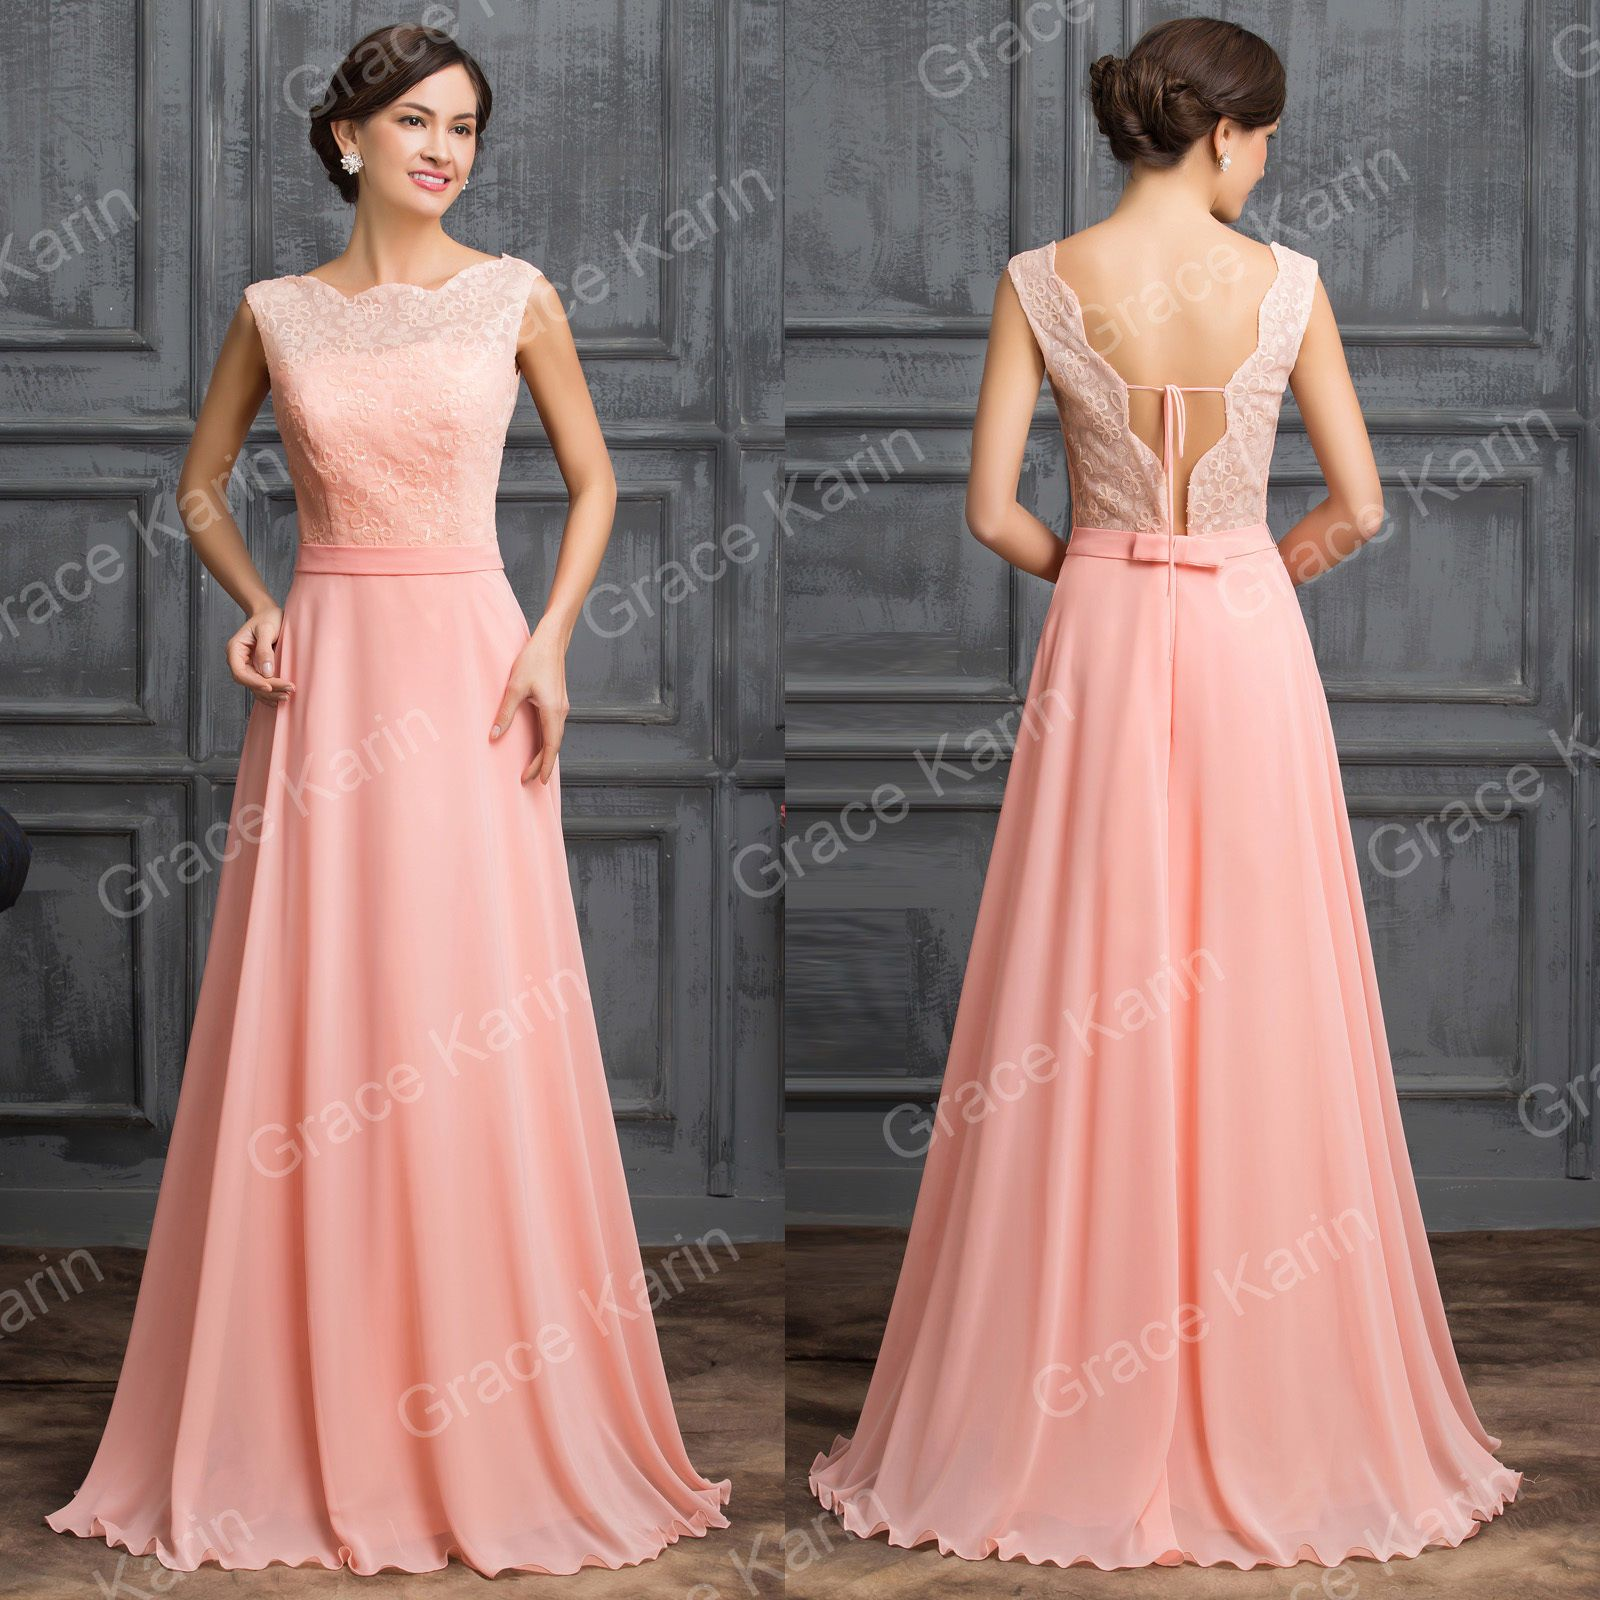 NEW VINTAGE 1950S 50S STYLE Long Bridesmaid MAXI Dress Evening ...